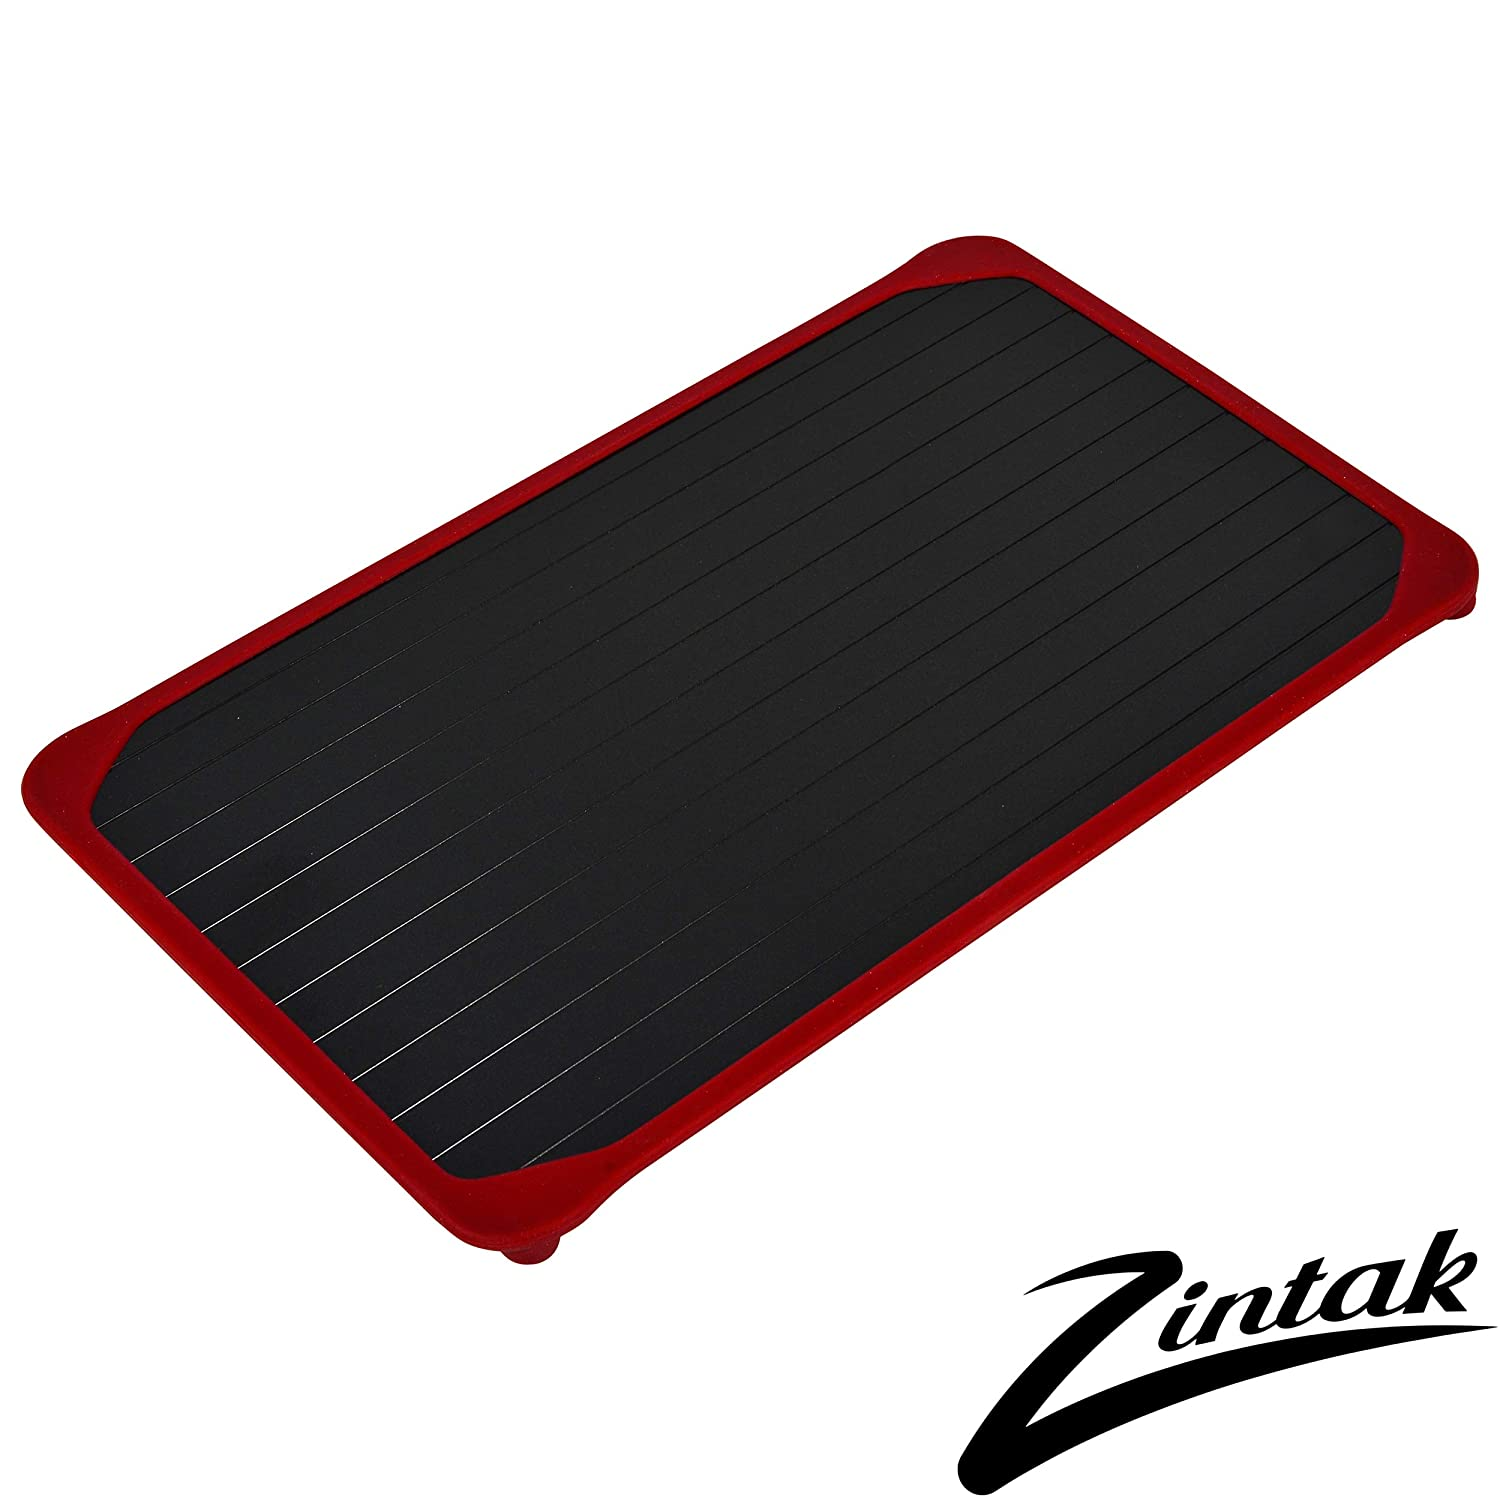 Zintak Defrosting Tray Large | Rustic Red Silicone Border | Natural Eco Friendly Heating | No Electricity | No Chemicals | Thaw Faster | Large Size for Meat, Chicken, Vegetables